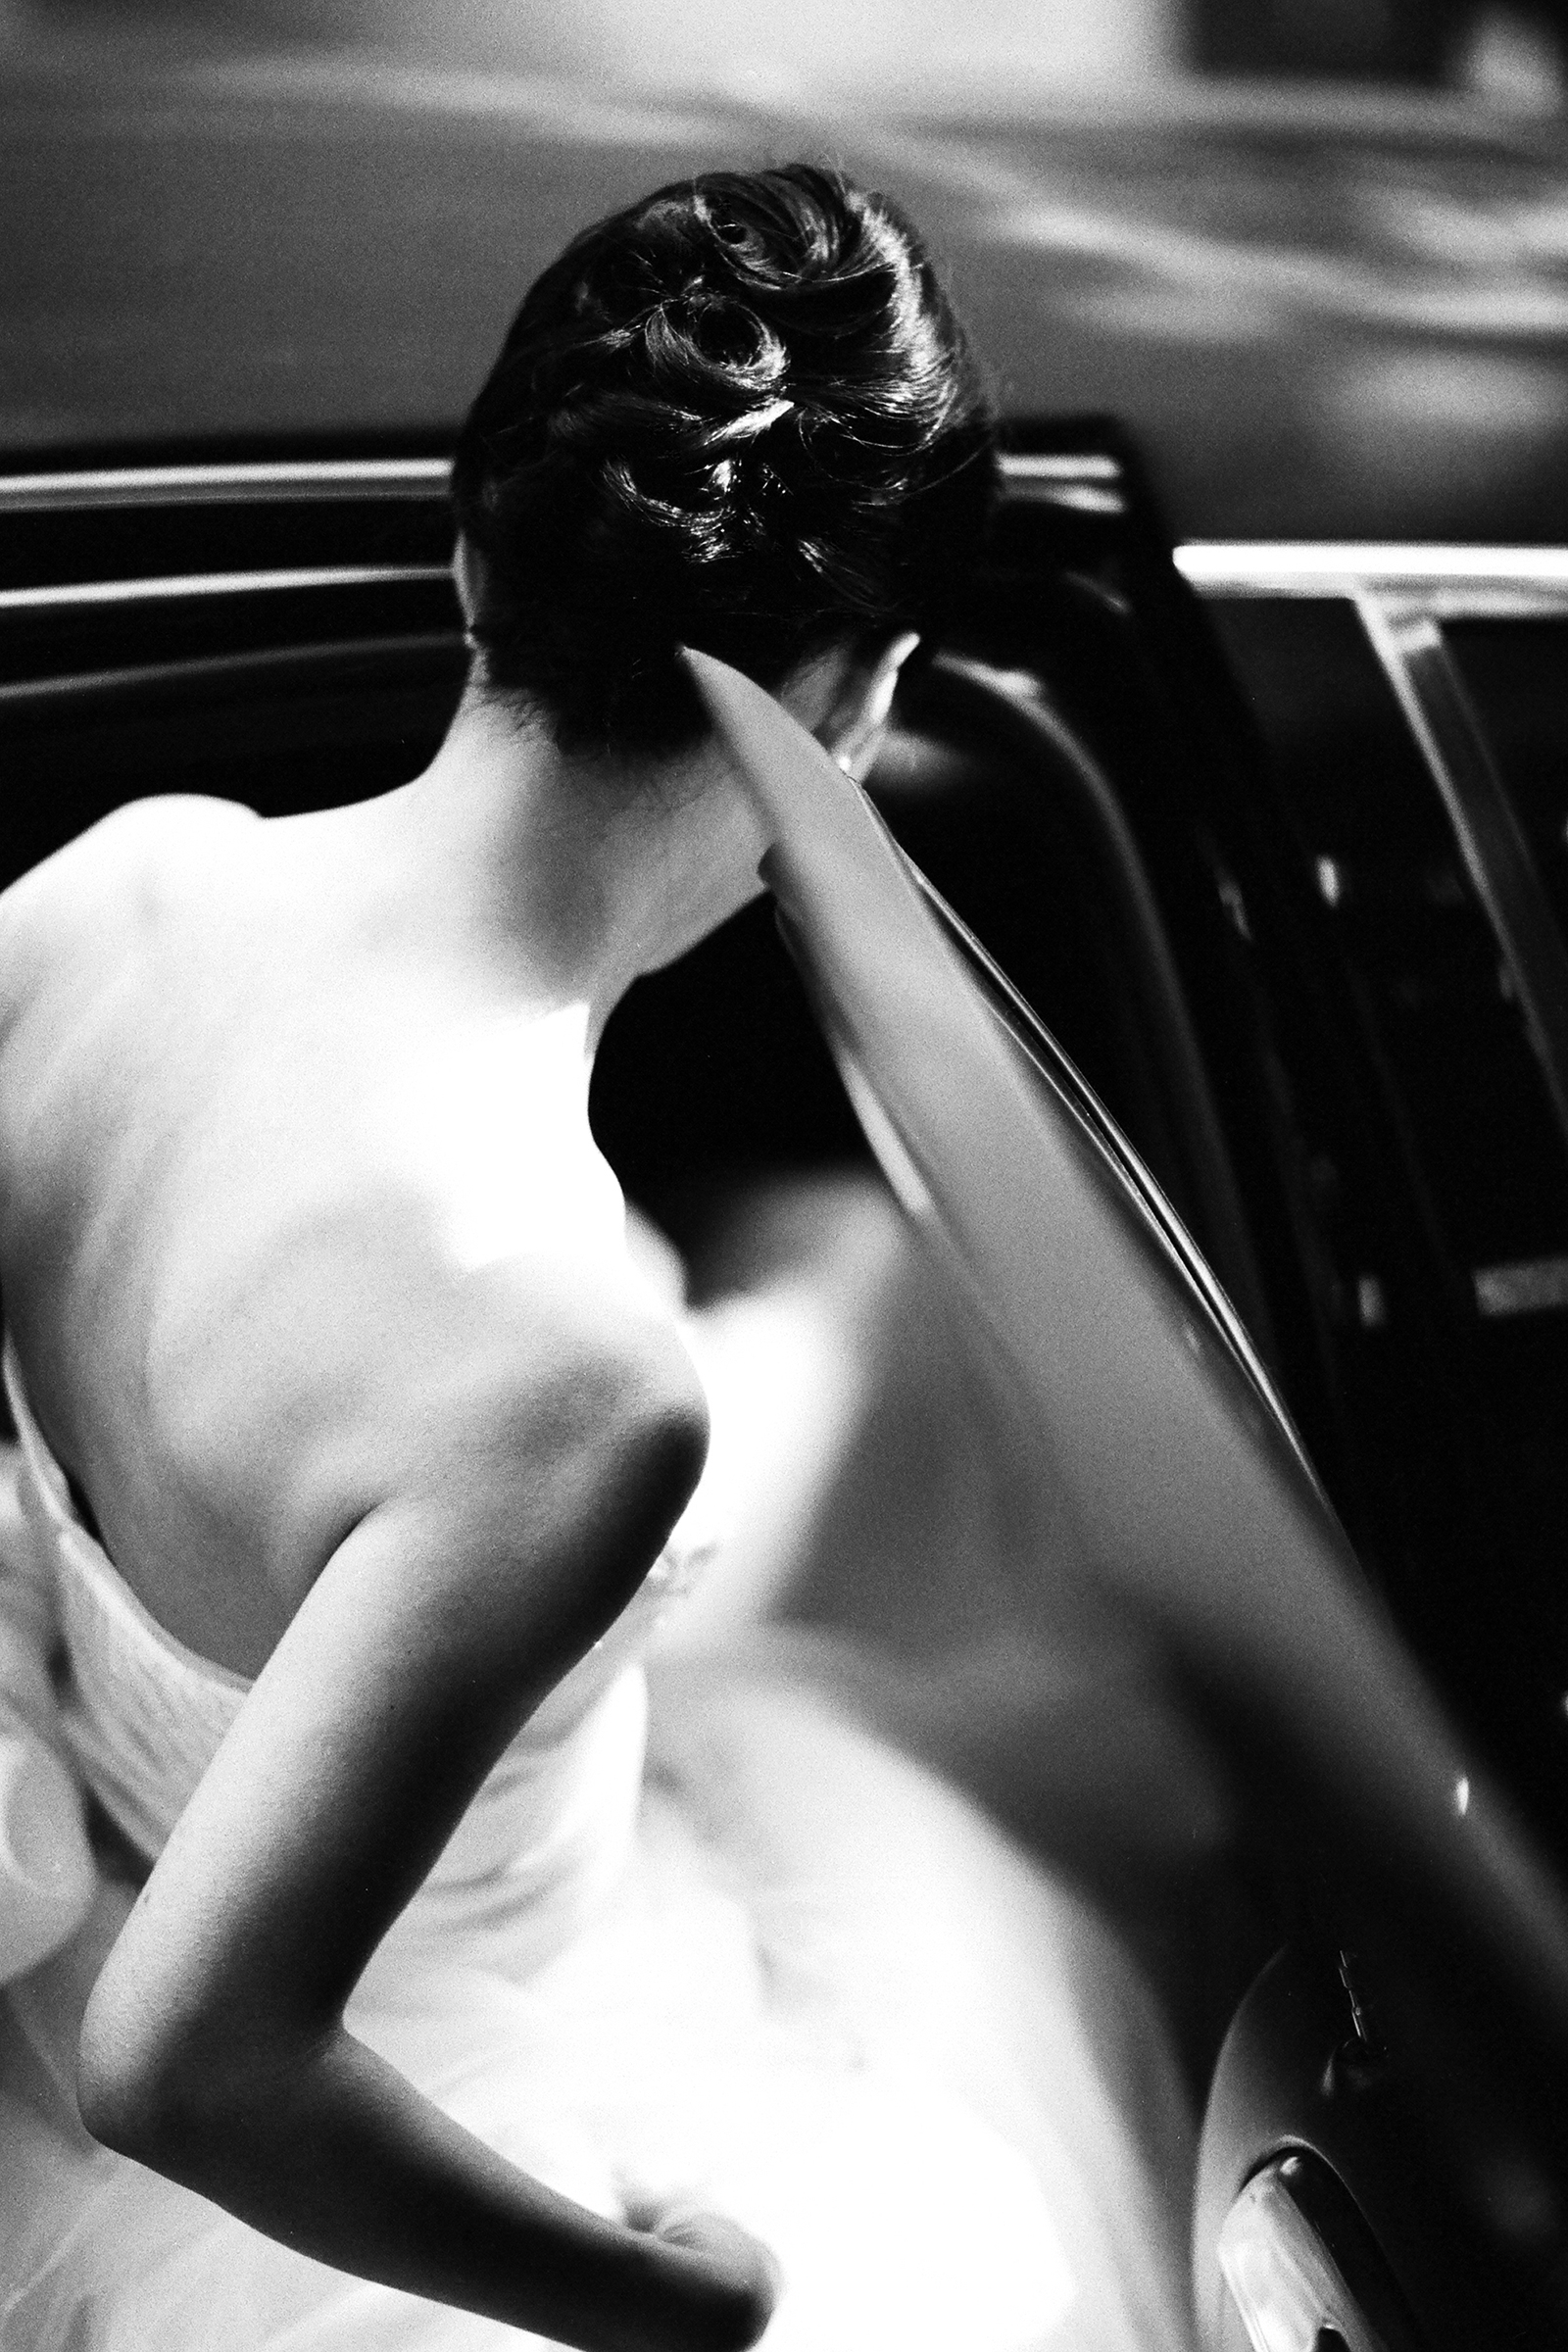 bride-stepping-into-limo-bradley-hanson-photography